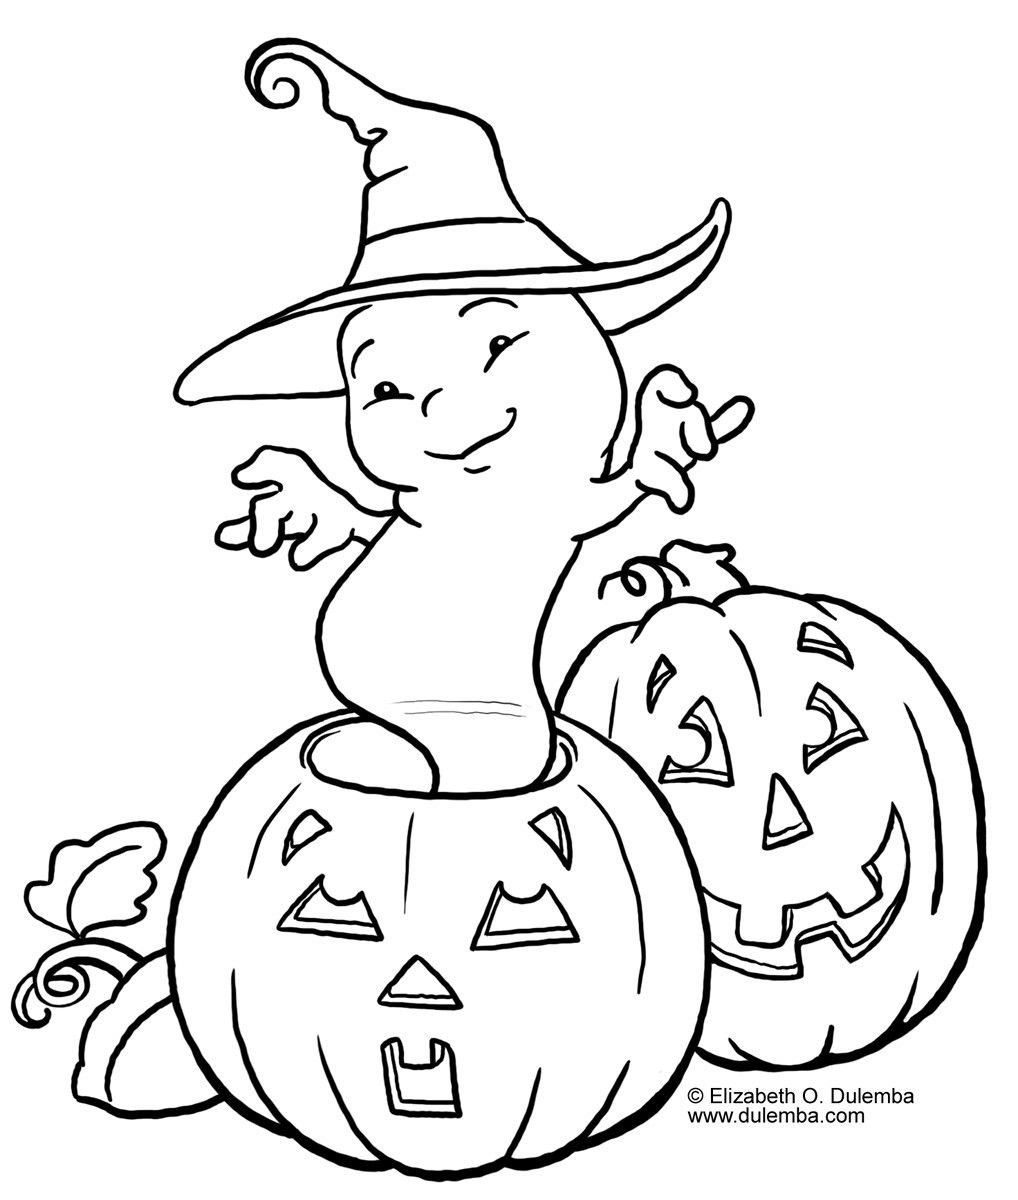 Halloween Pumpkin Colouring Pages For Kids | Coloring Pages ...